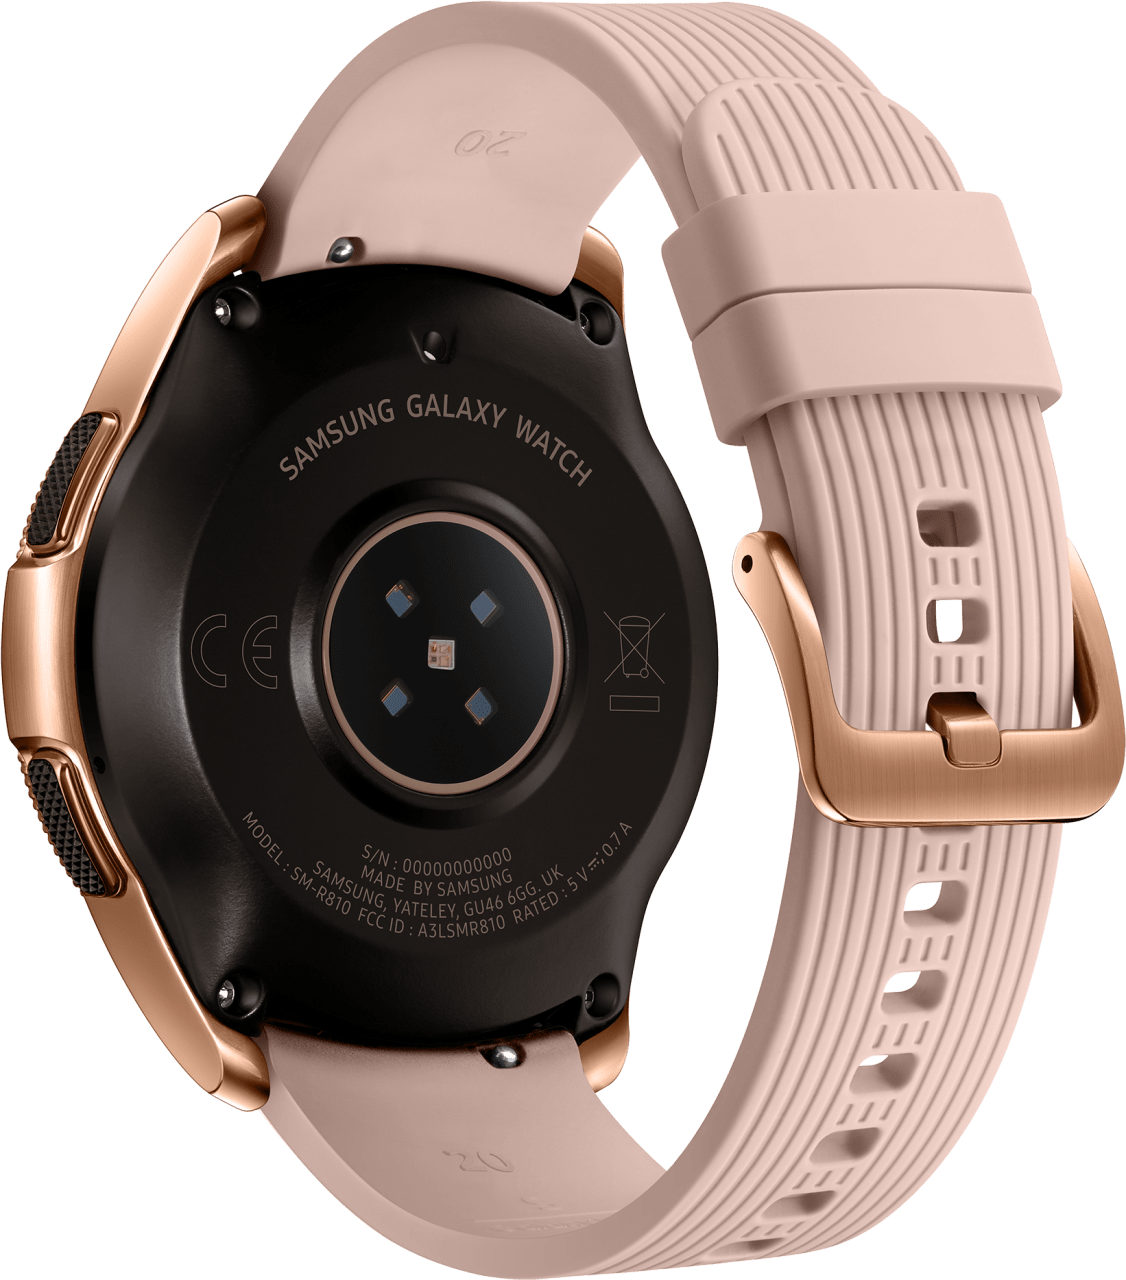 Rose Gold Samsung Galaxy Watch LTE, 42mm Stainless steel case, Silicone band.3